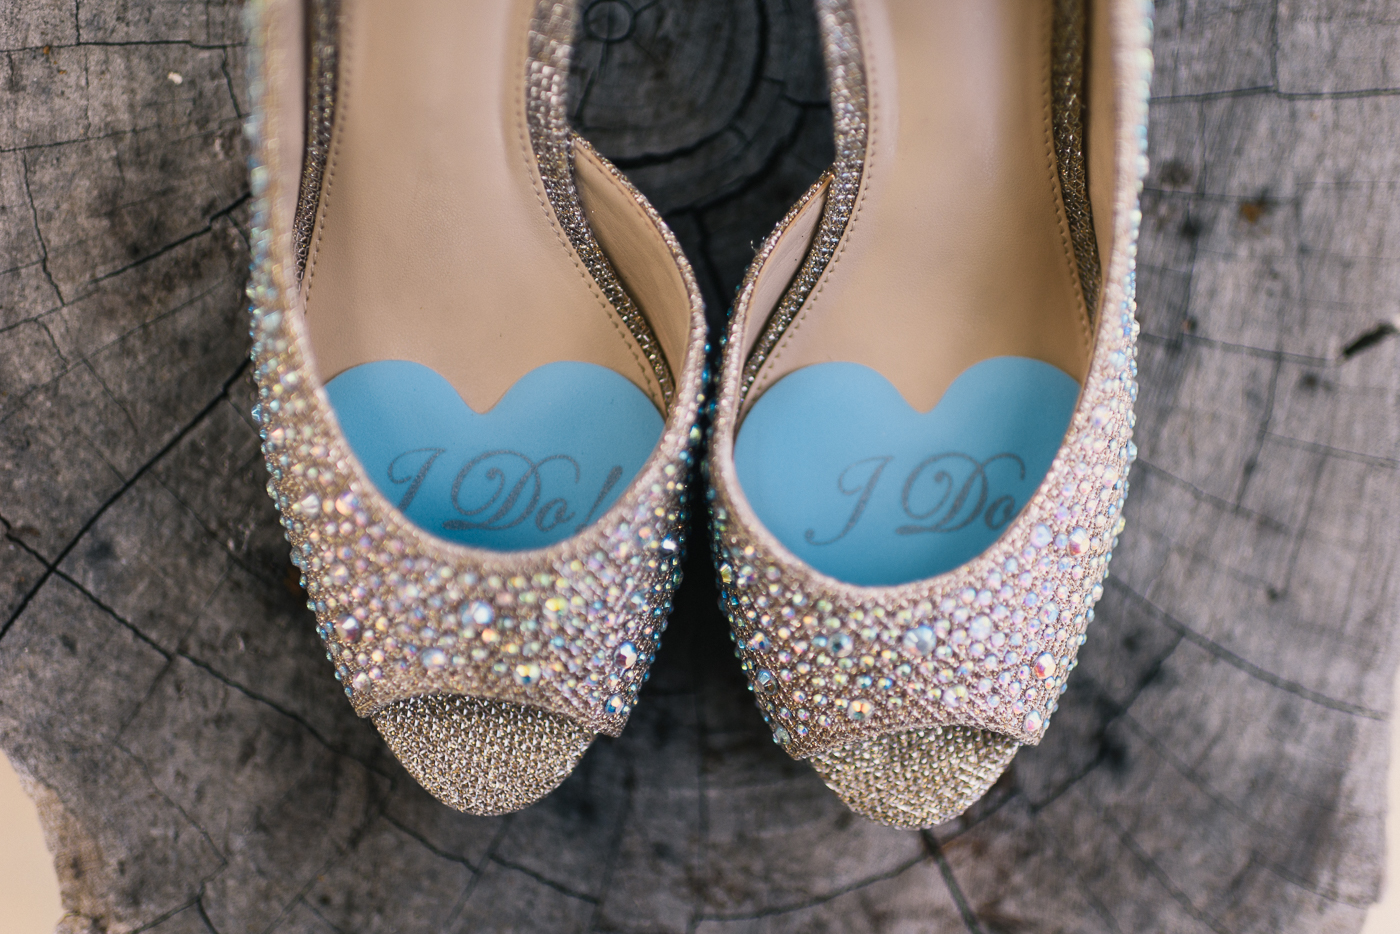 Wedding Shoes stump open toes off white tan studded wedding peep toe heels I do something blue old new borrowed